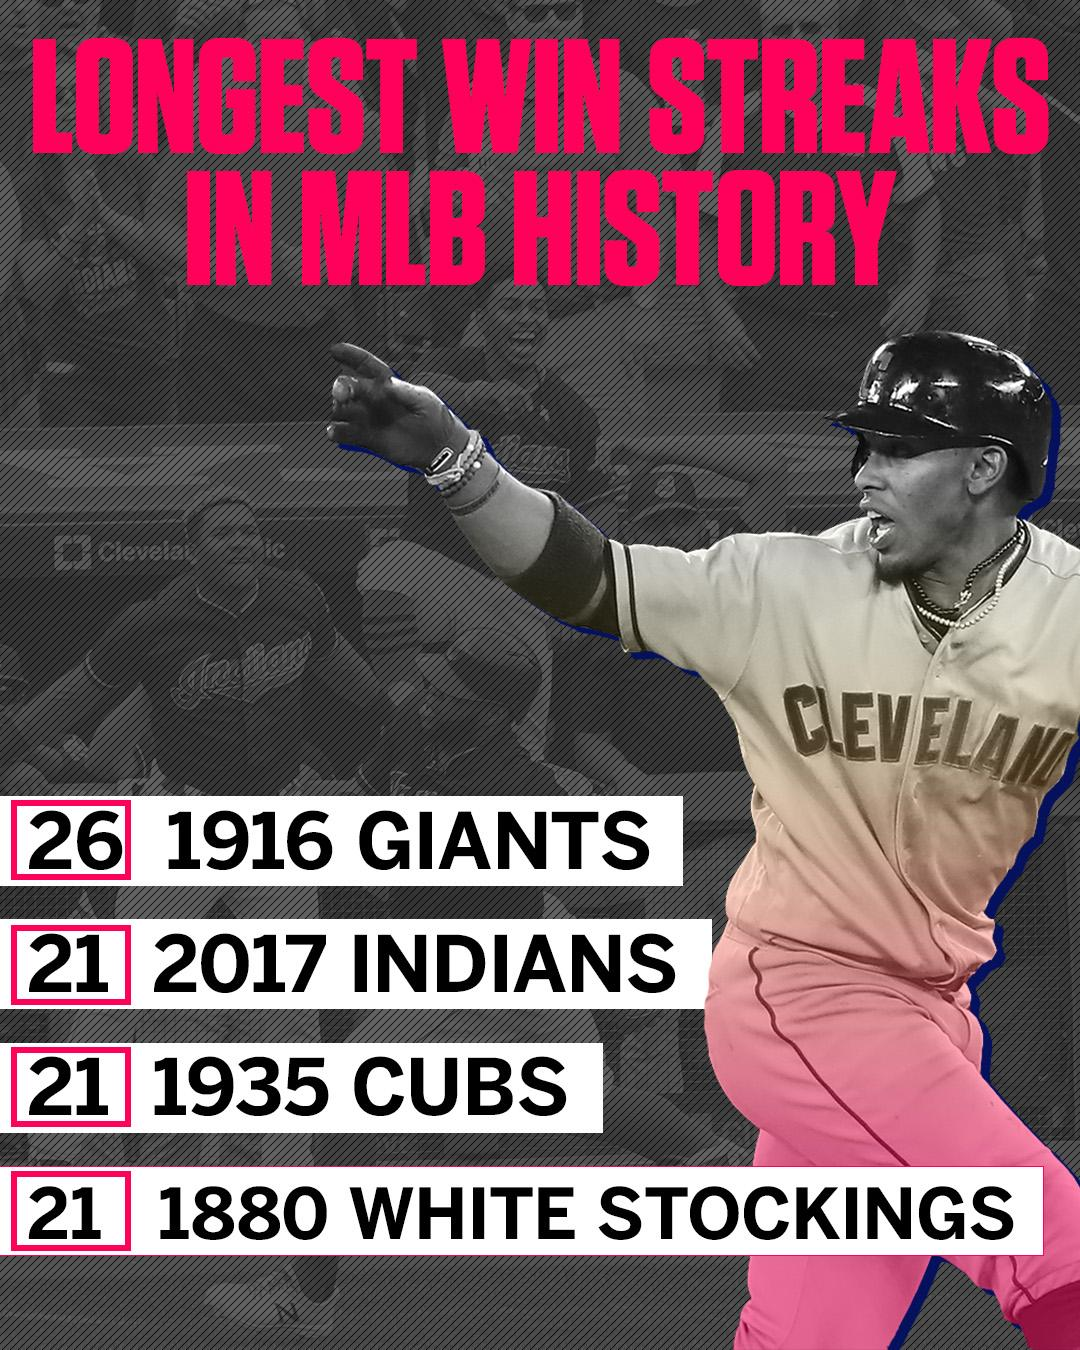 The Indians are 1 of just 4 MLB teams to ever win 21 straight games. (via @EliasSports) https://t.co/xTj9i6RkD7